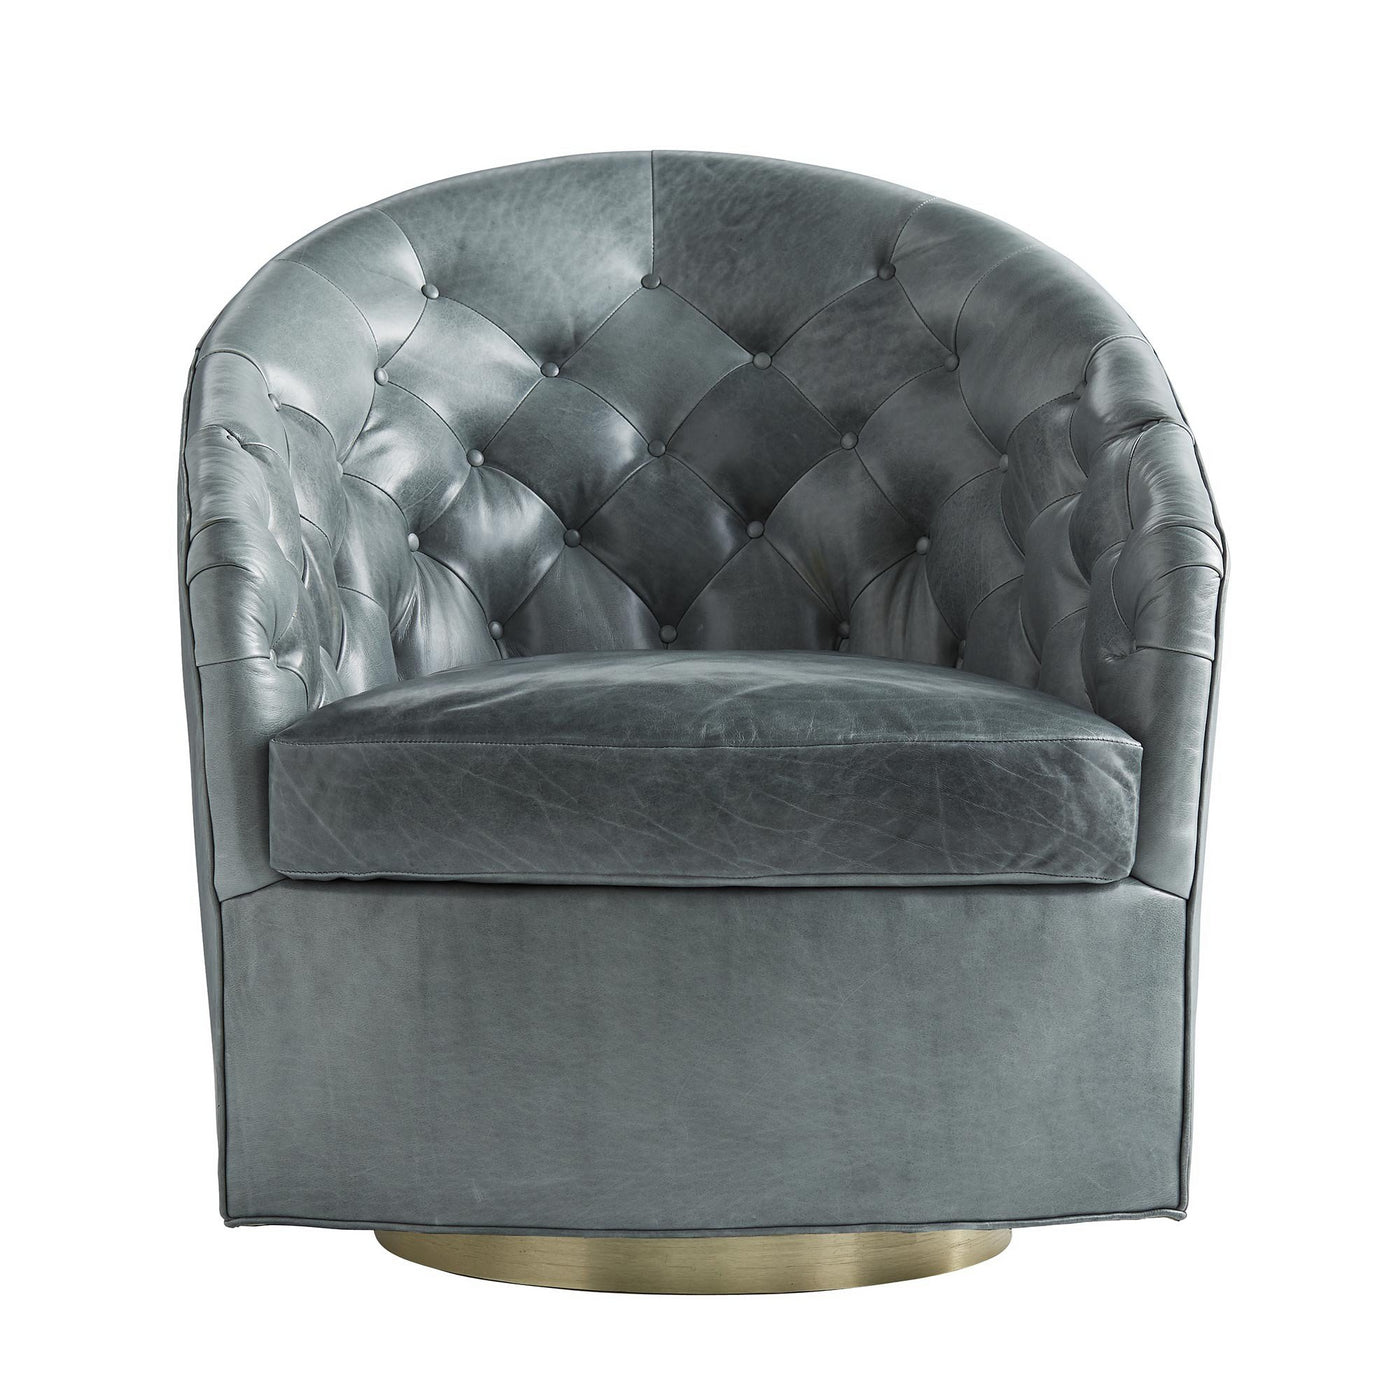 Arteriors Home Capri Chair Juniper Leather Champagne Swivel